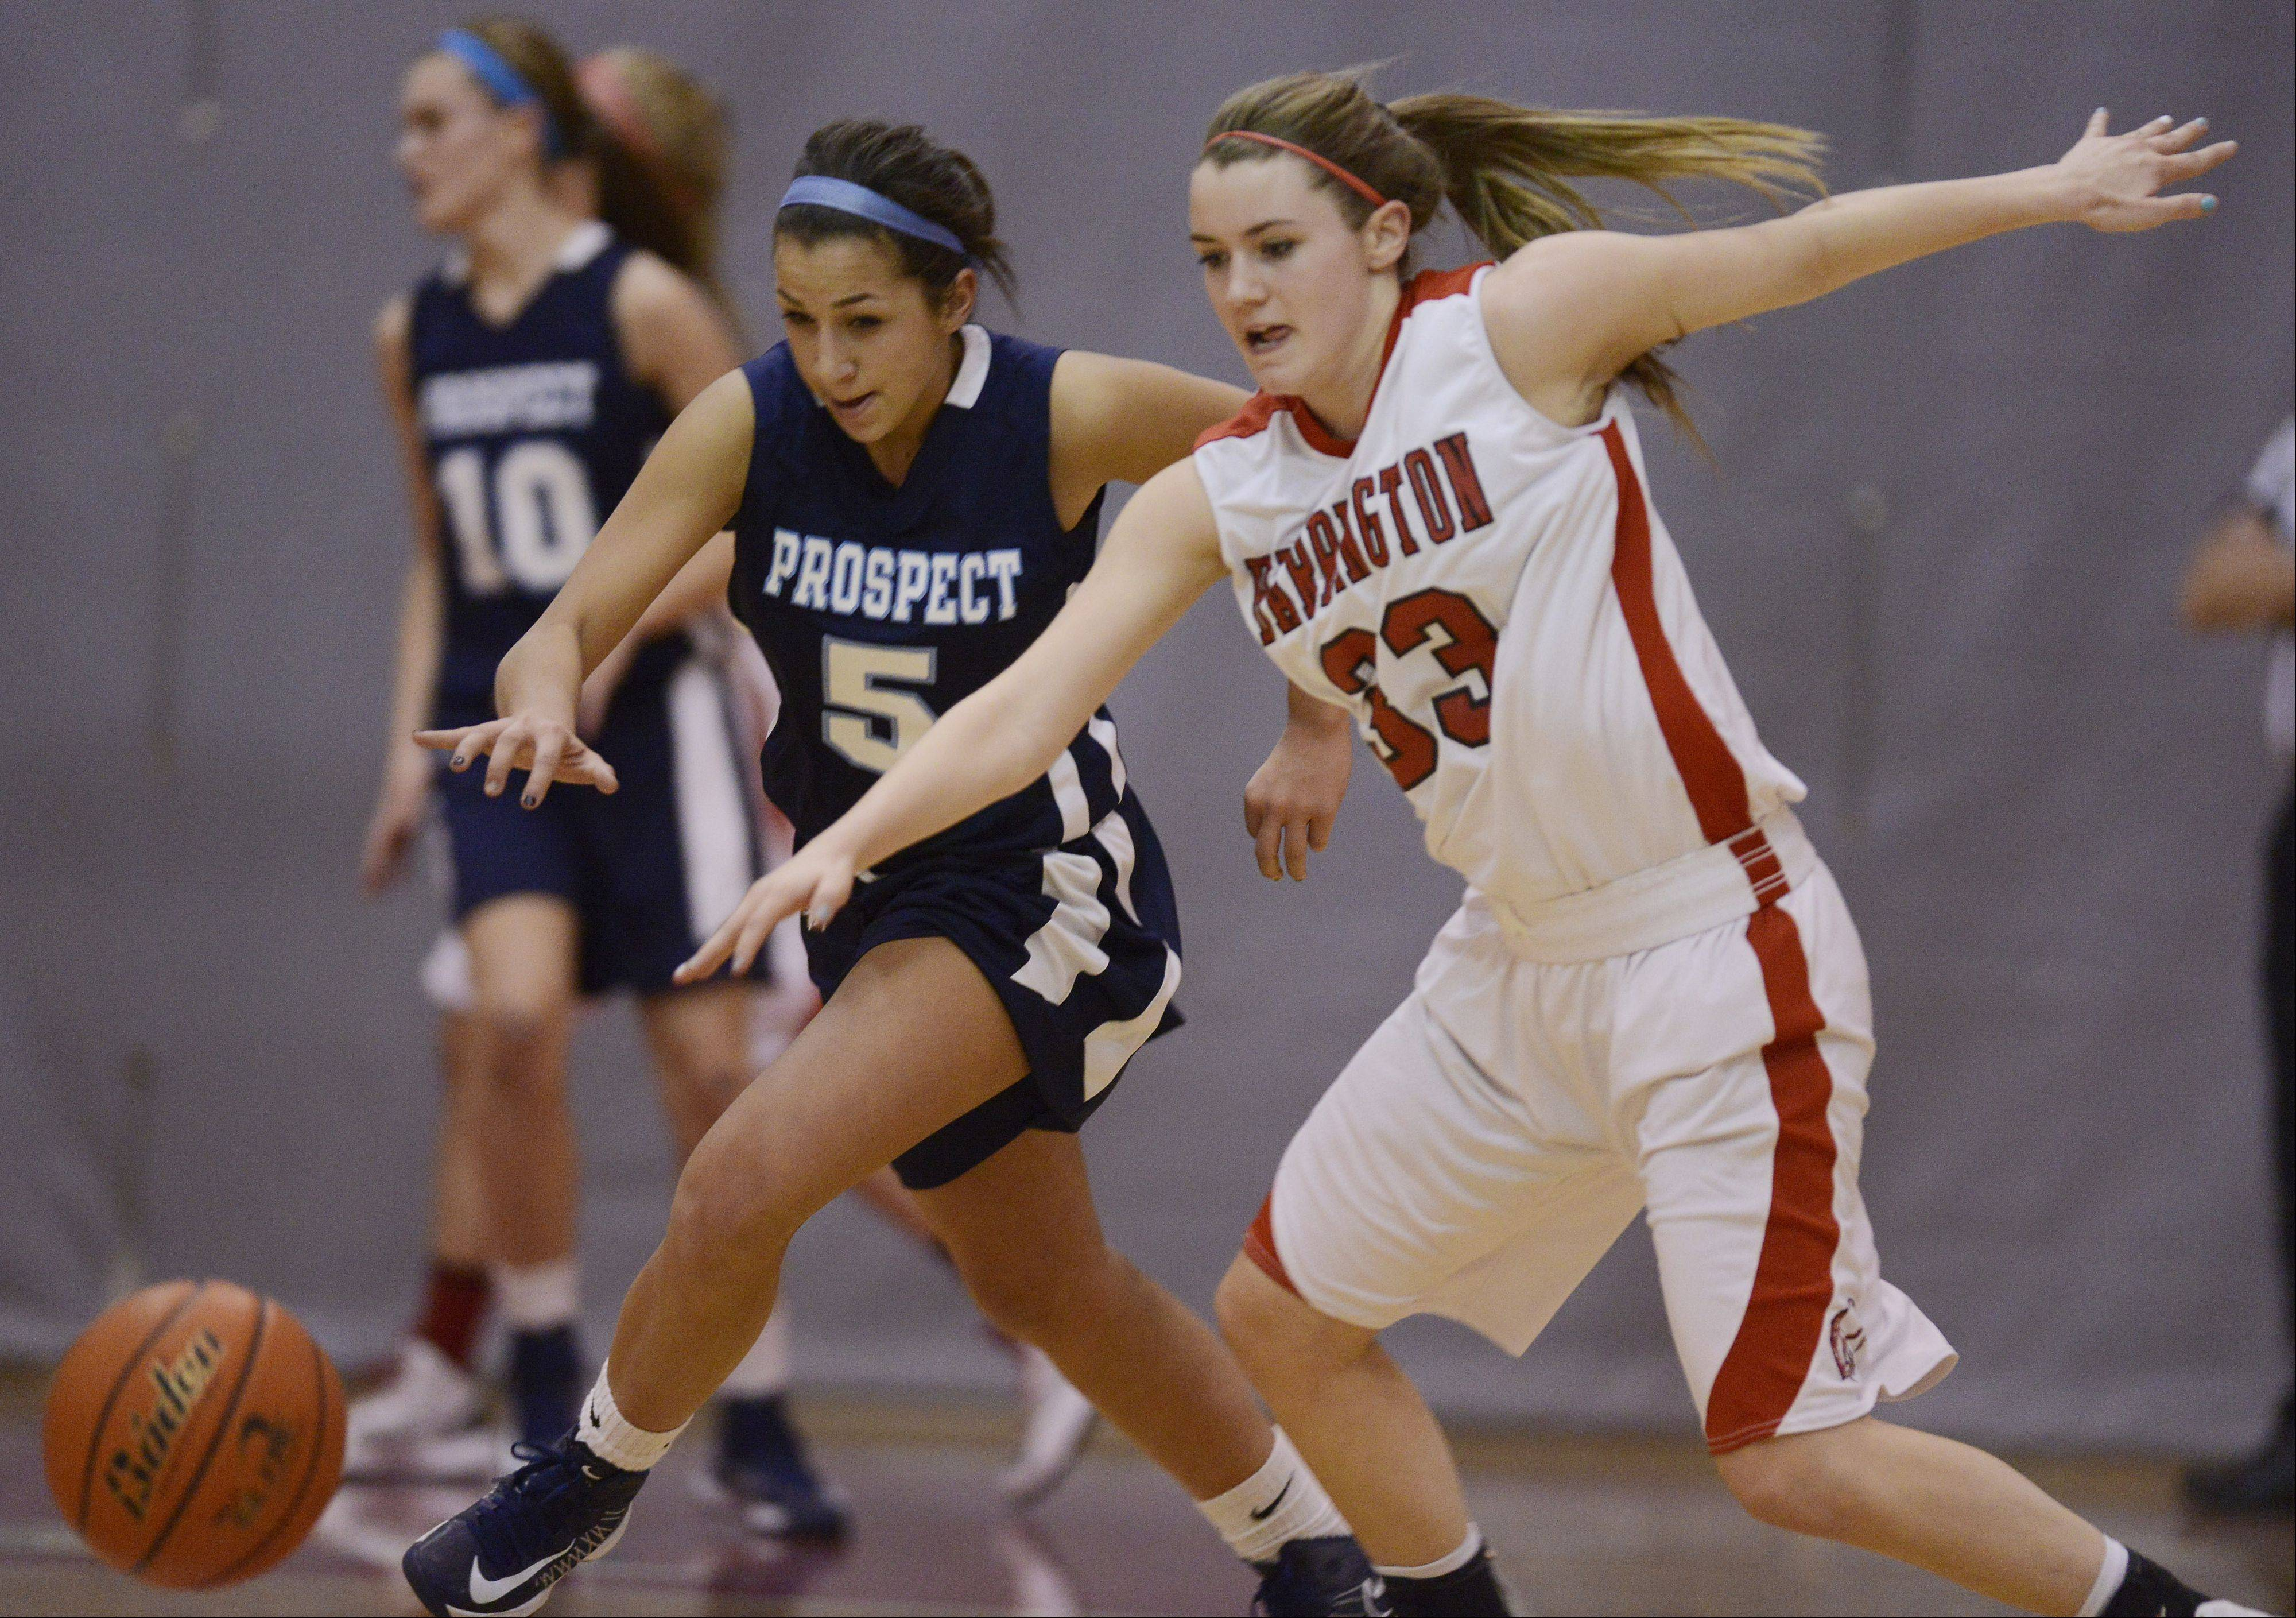 Prospect�s Kristen Frasco, left, tries to steal the ball from Barrington�s Angie Kirchoff.